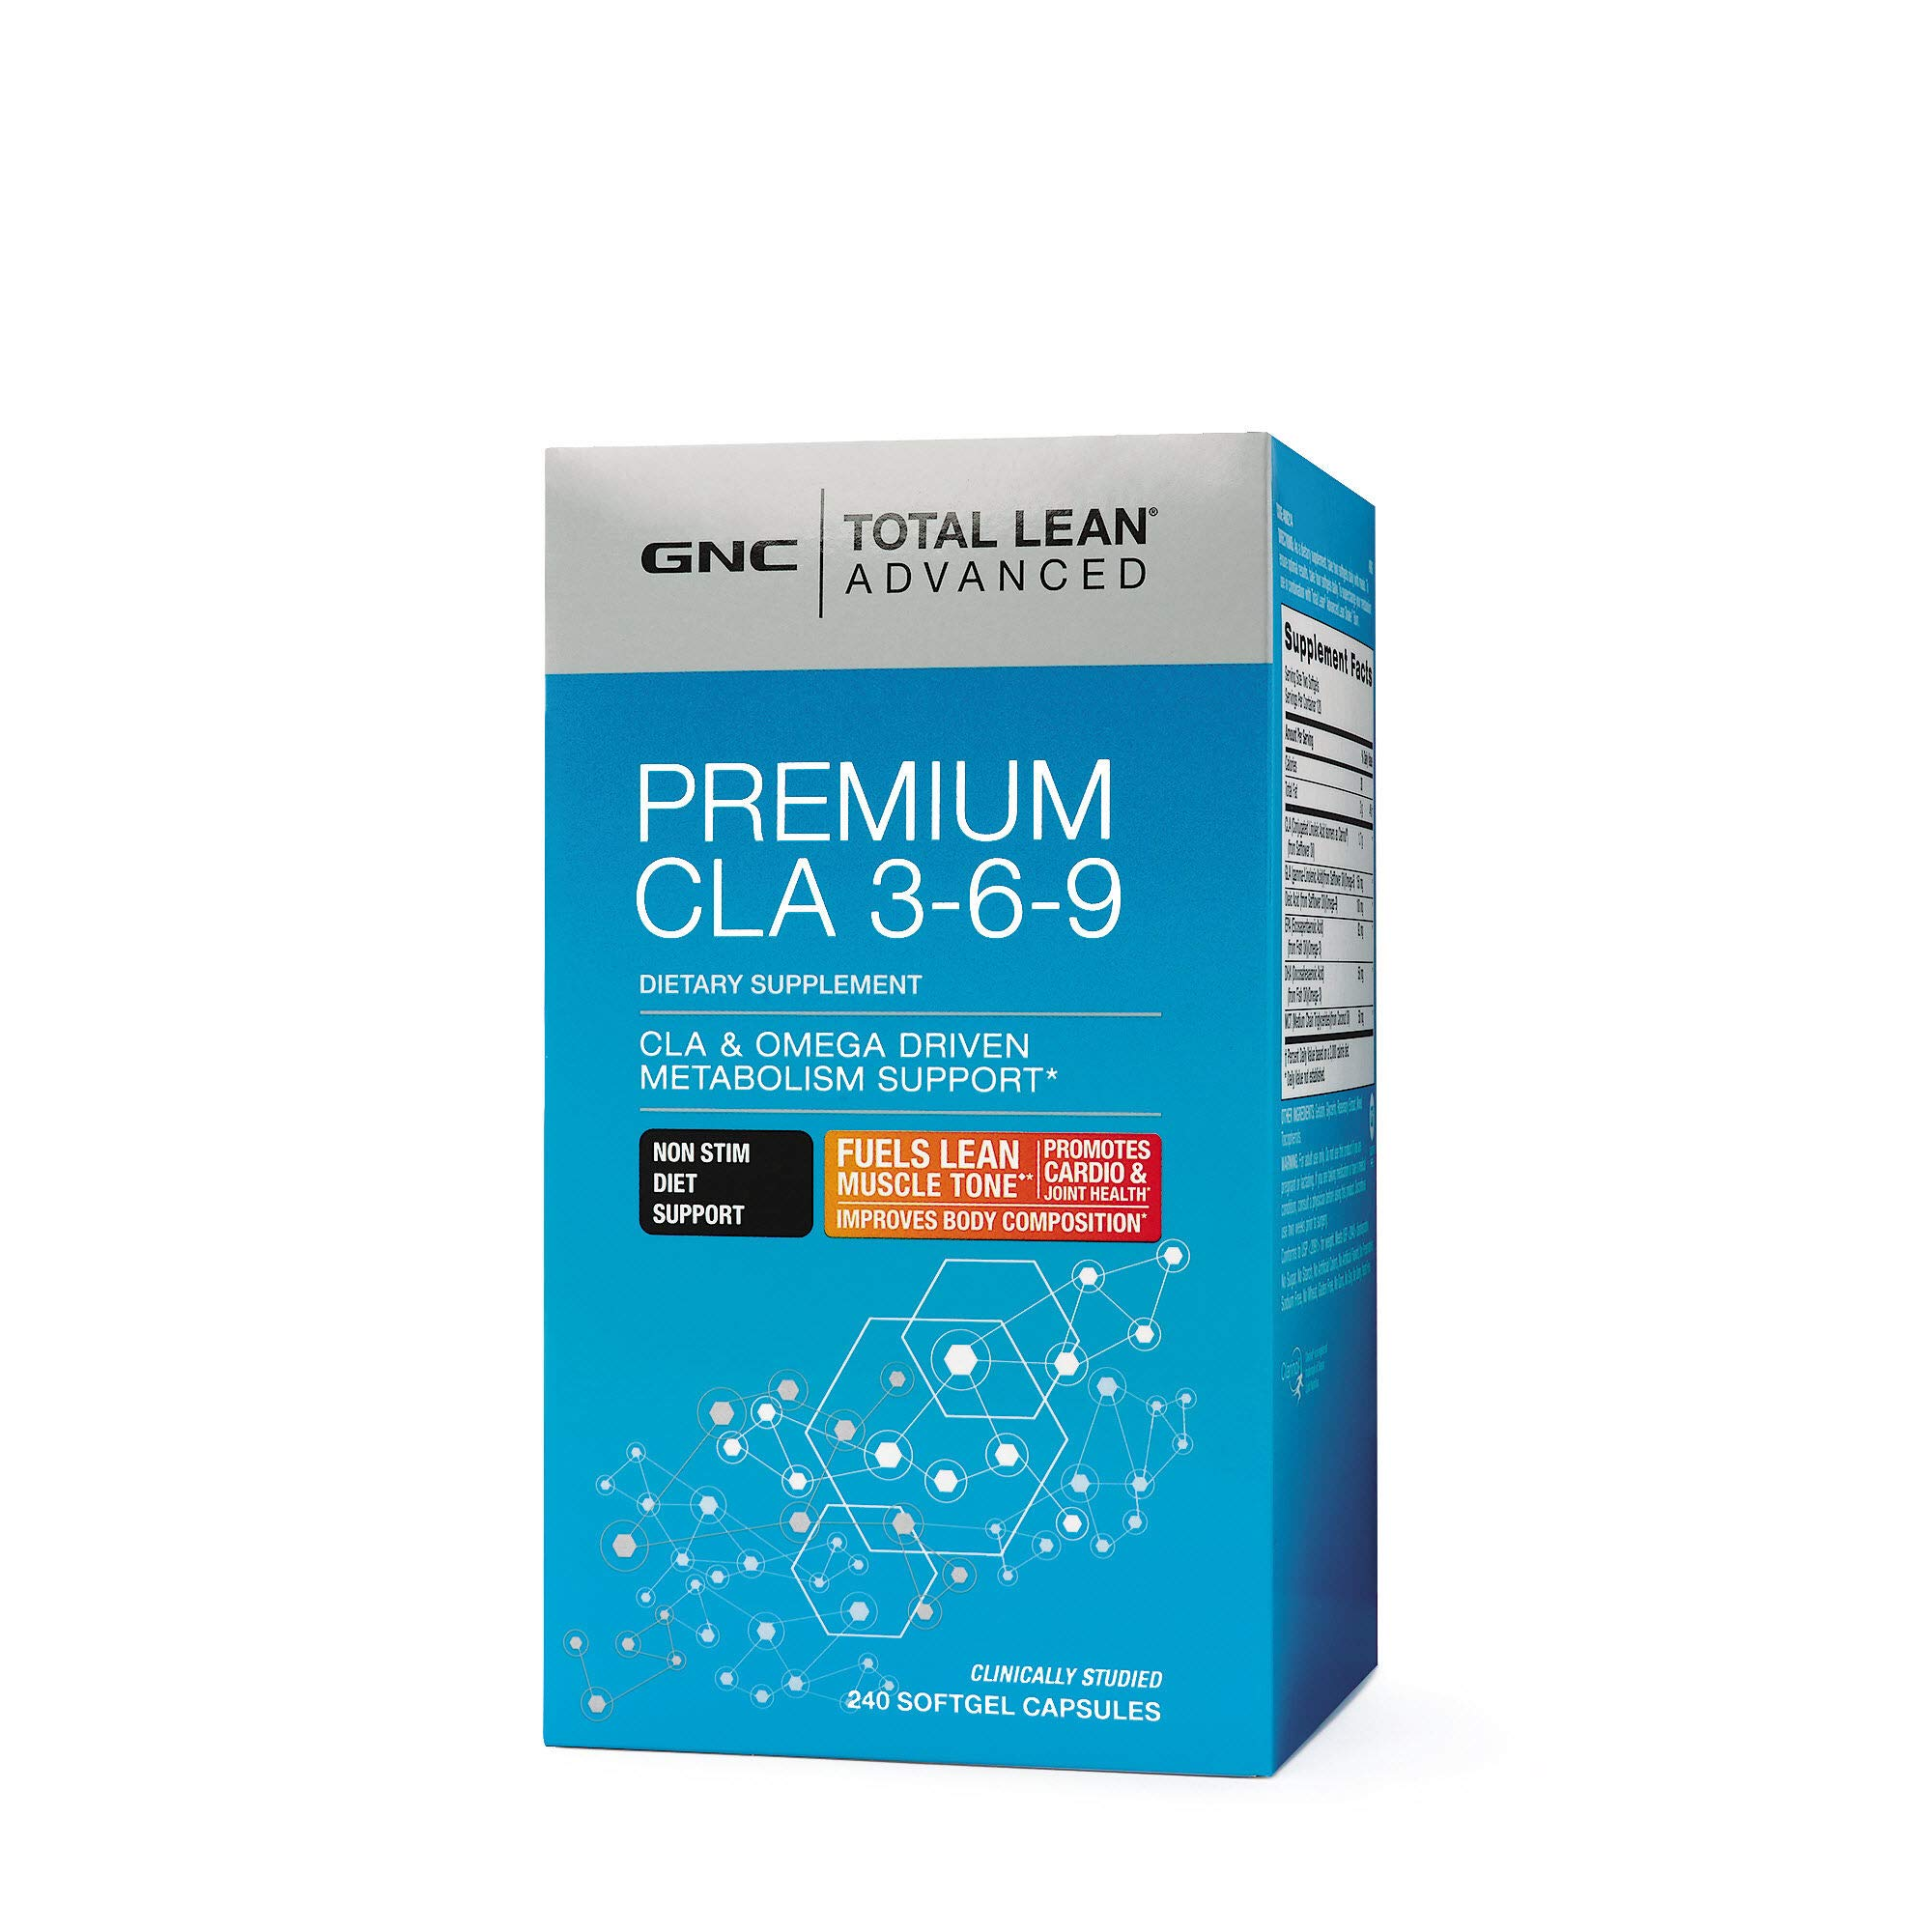 GNC Total Lean Advanced Premium CLA 3-6-9, 240 Capsules, Supports Exercise and Muscle Recovery by GNC